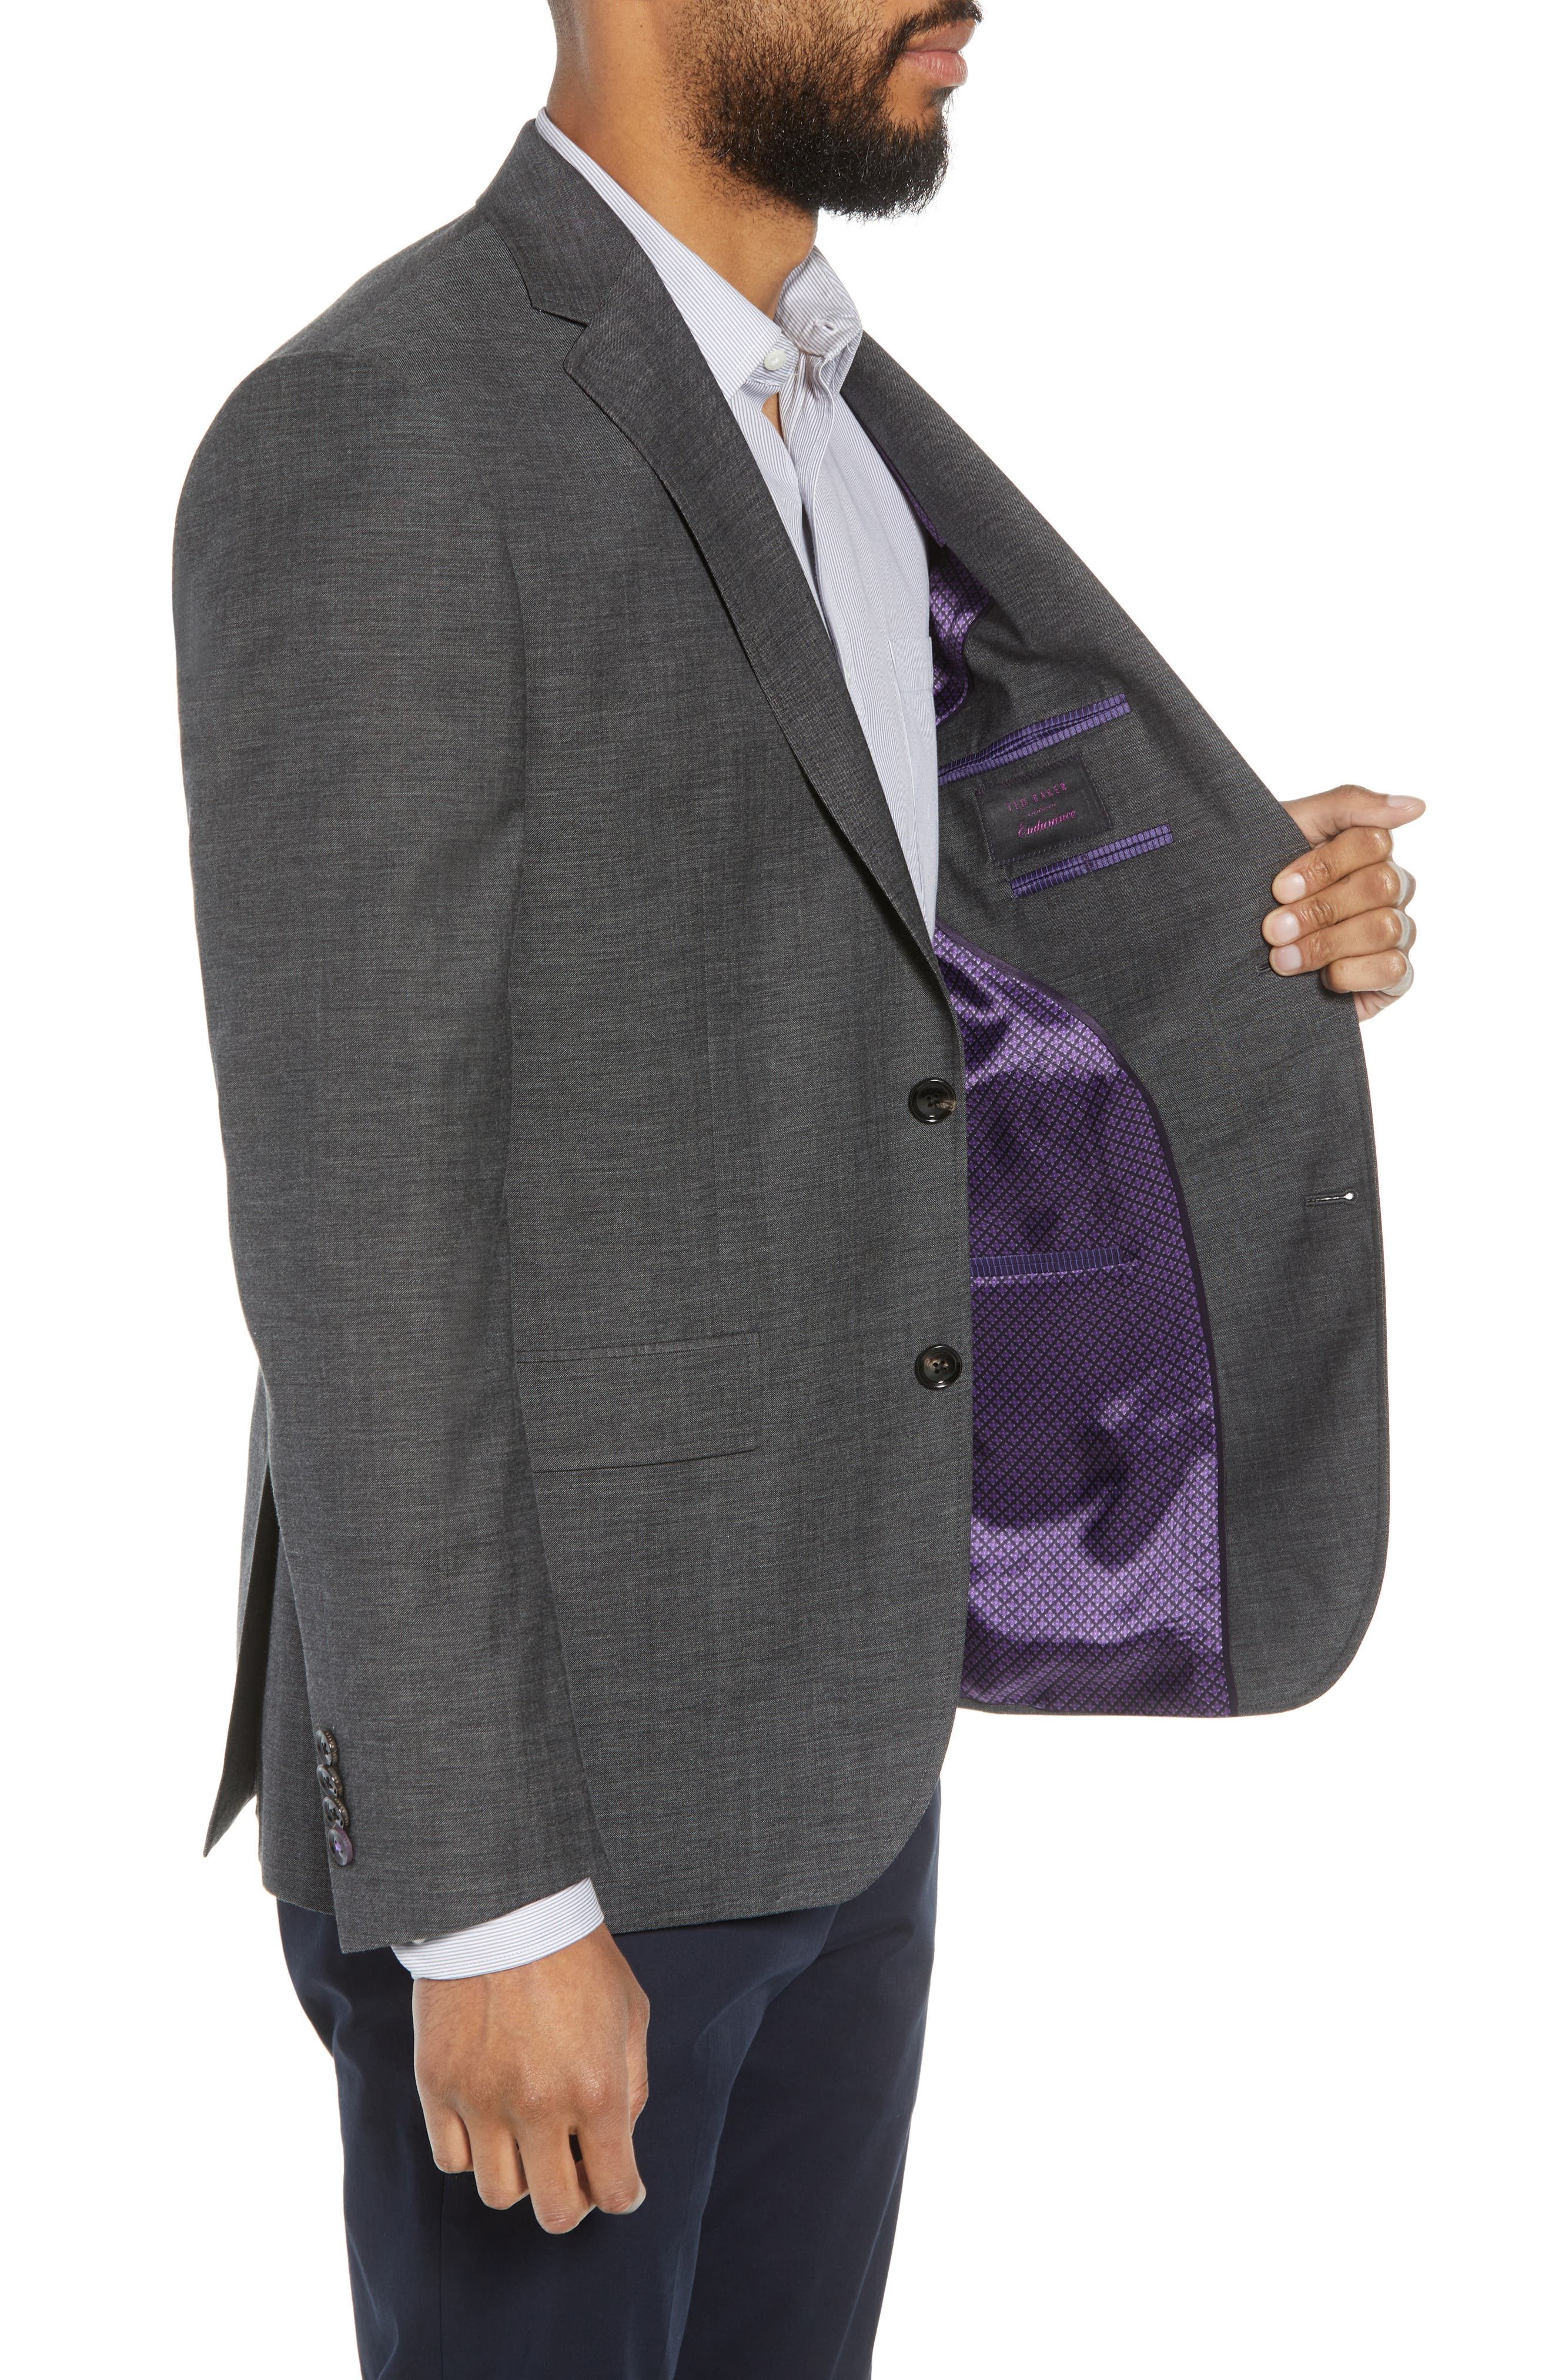 Jay Trim Fit Heathered Wool & Cotton Sport Coat,                             Alternate thumbnail 3, color,                             020